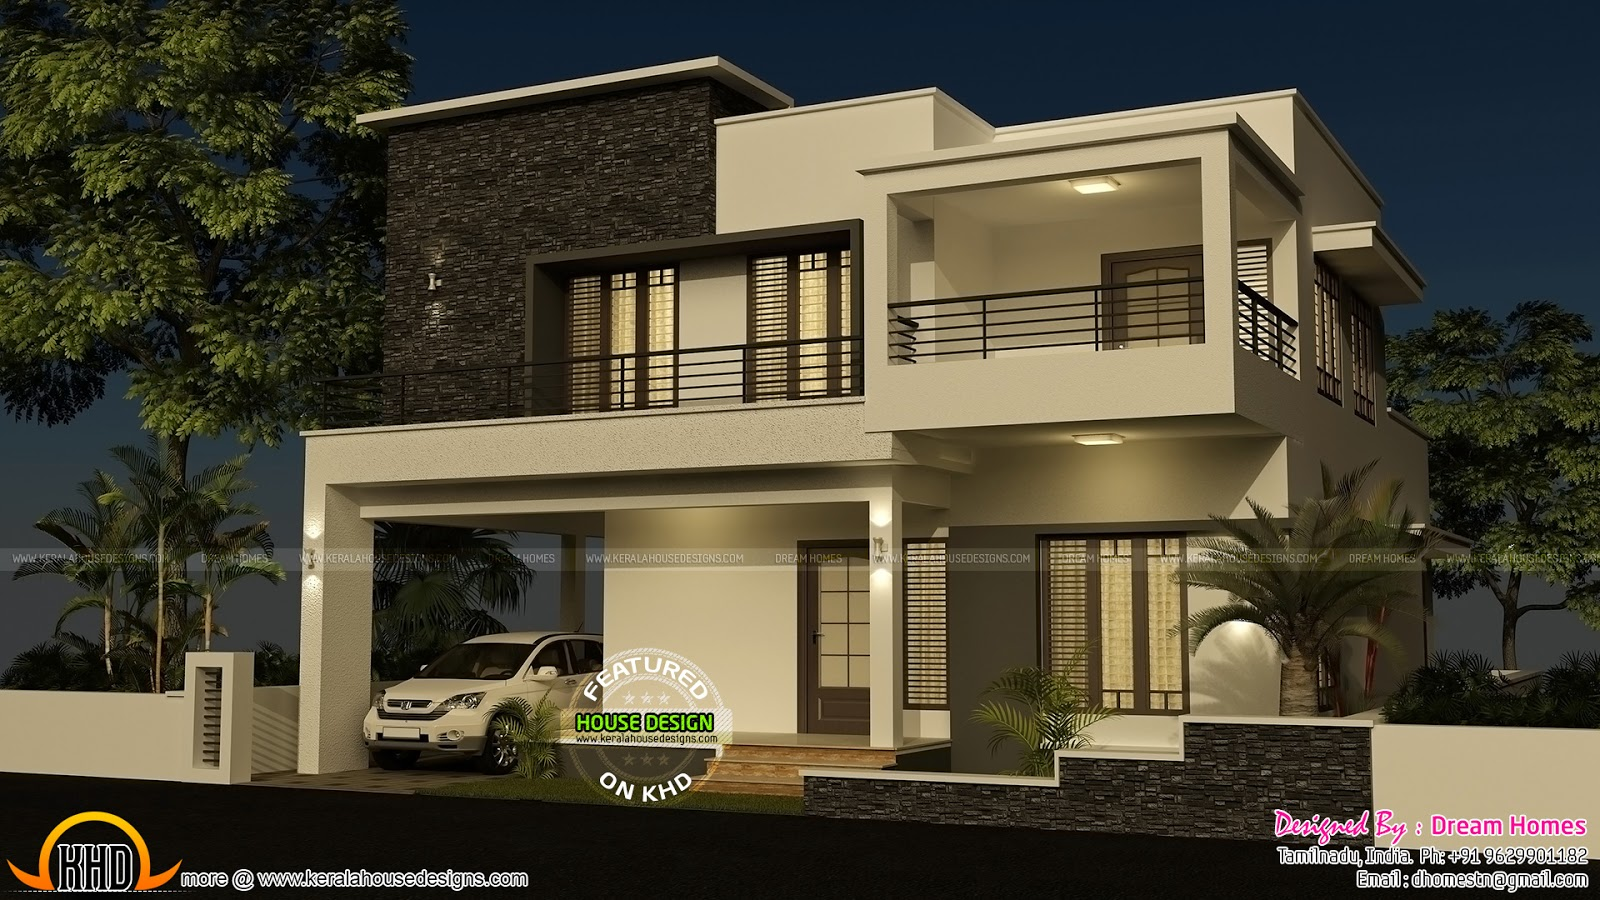 4 bedroom modern house with plan kerala home design and for 5 bedroom modern farmhouse plans